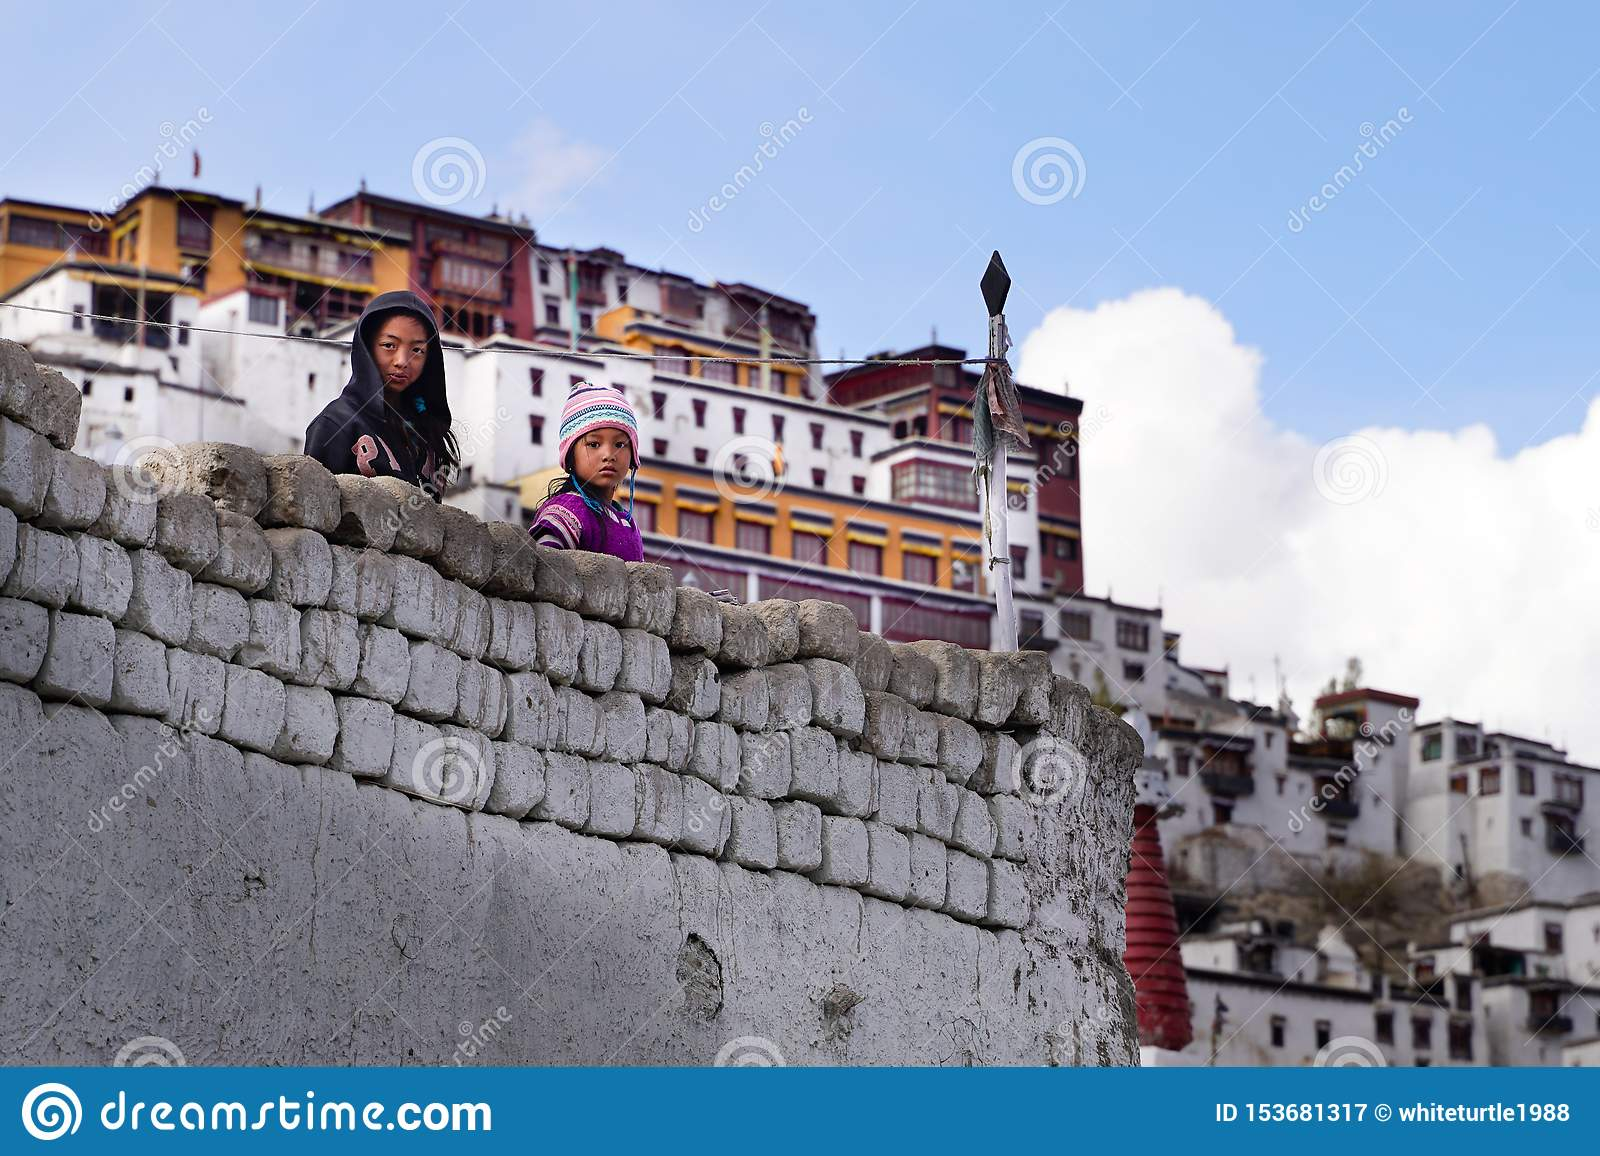 The two tibetan girls staying and looking from the wall